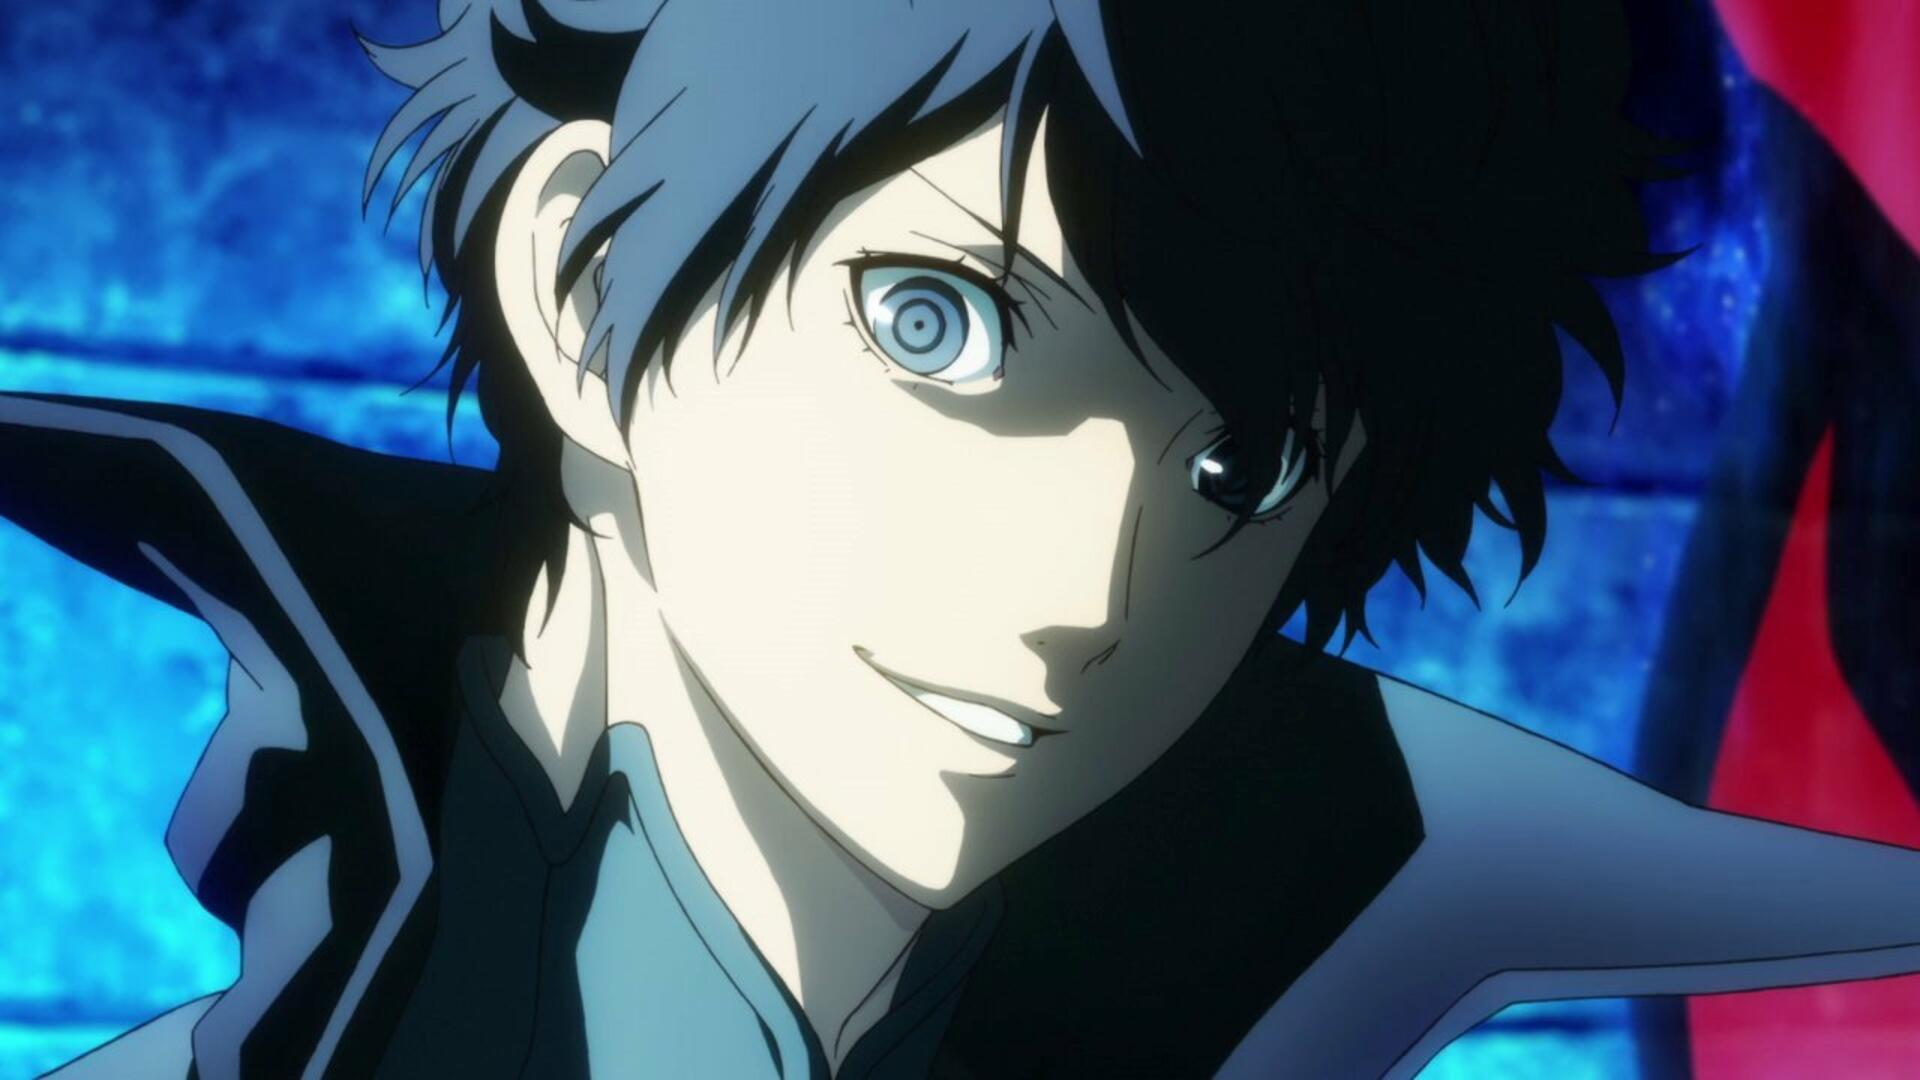 Persona 5: The Royal is Coming to PlayStation 4, but Not the Switch (Yet).